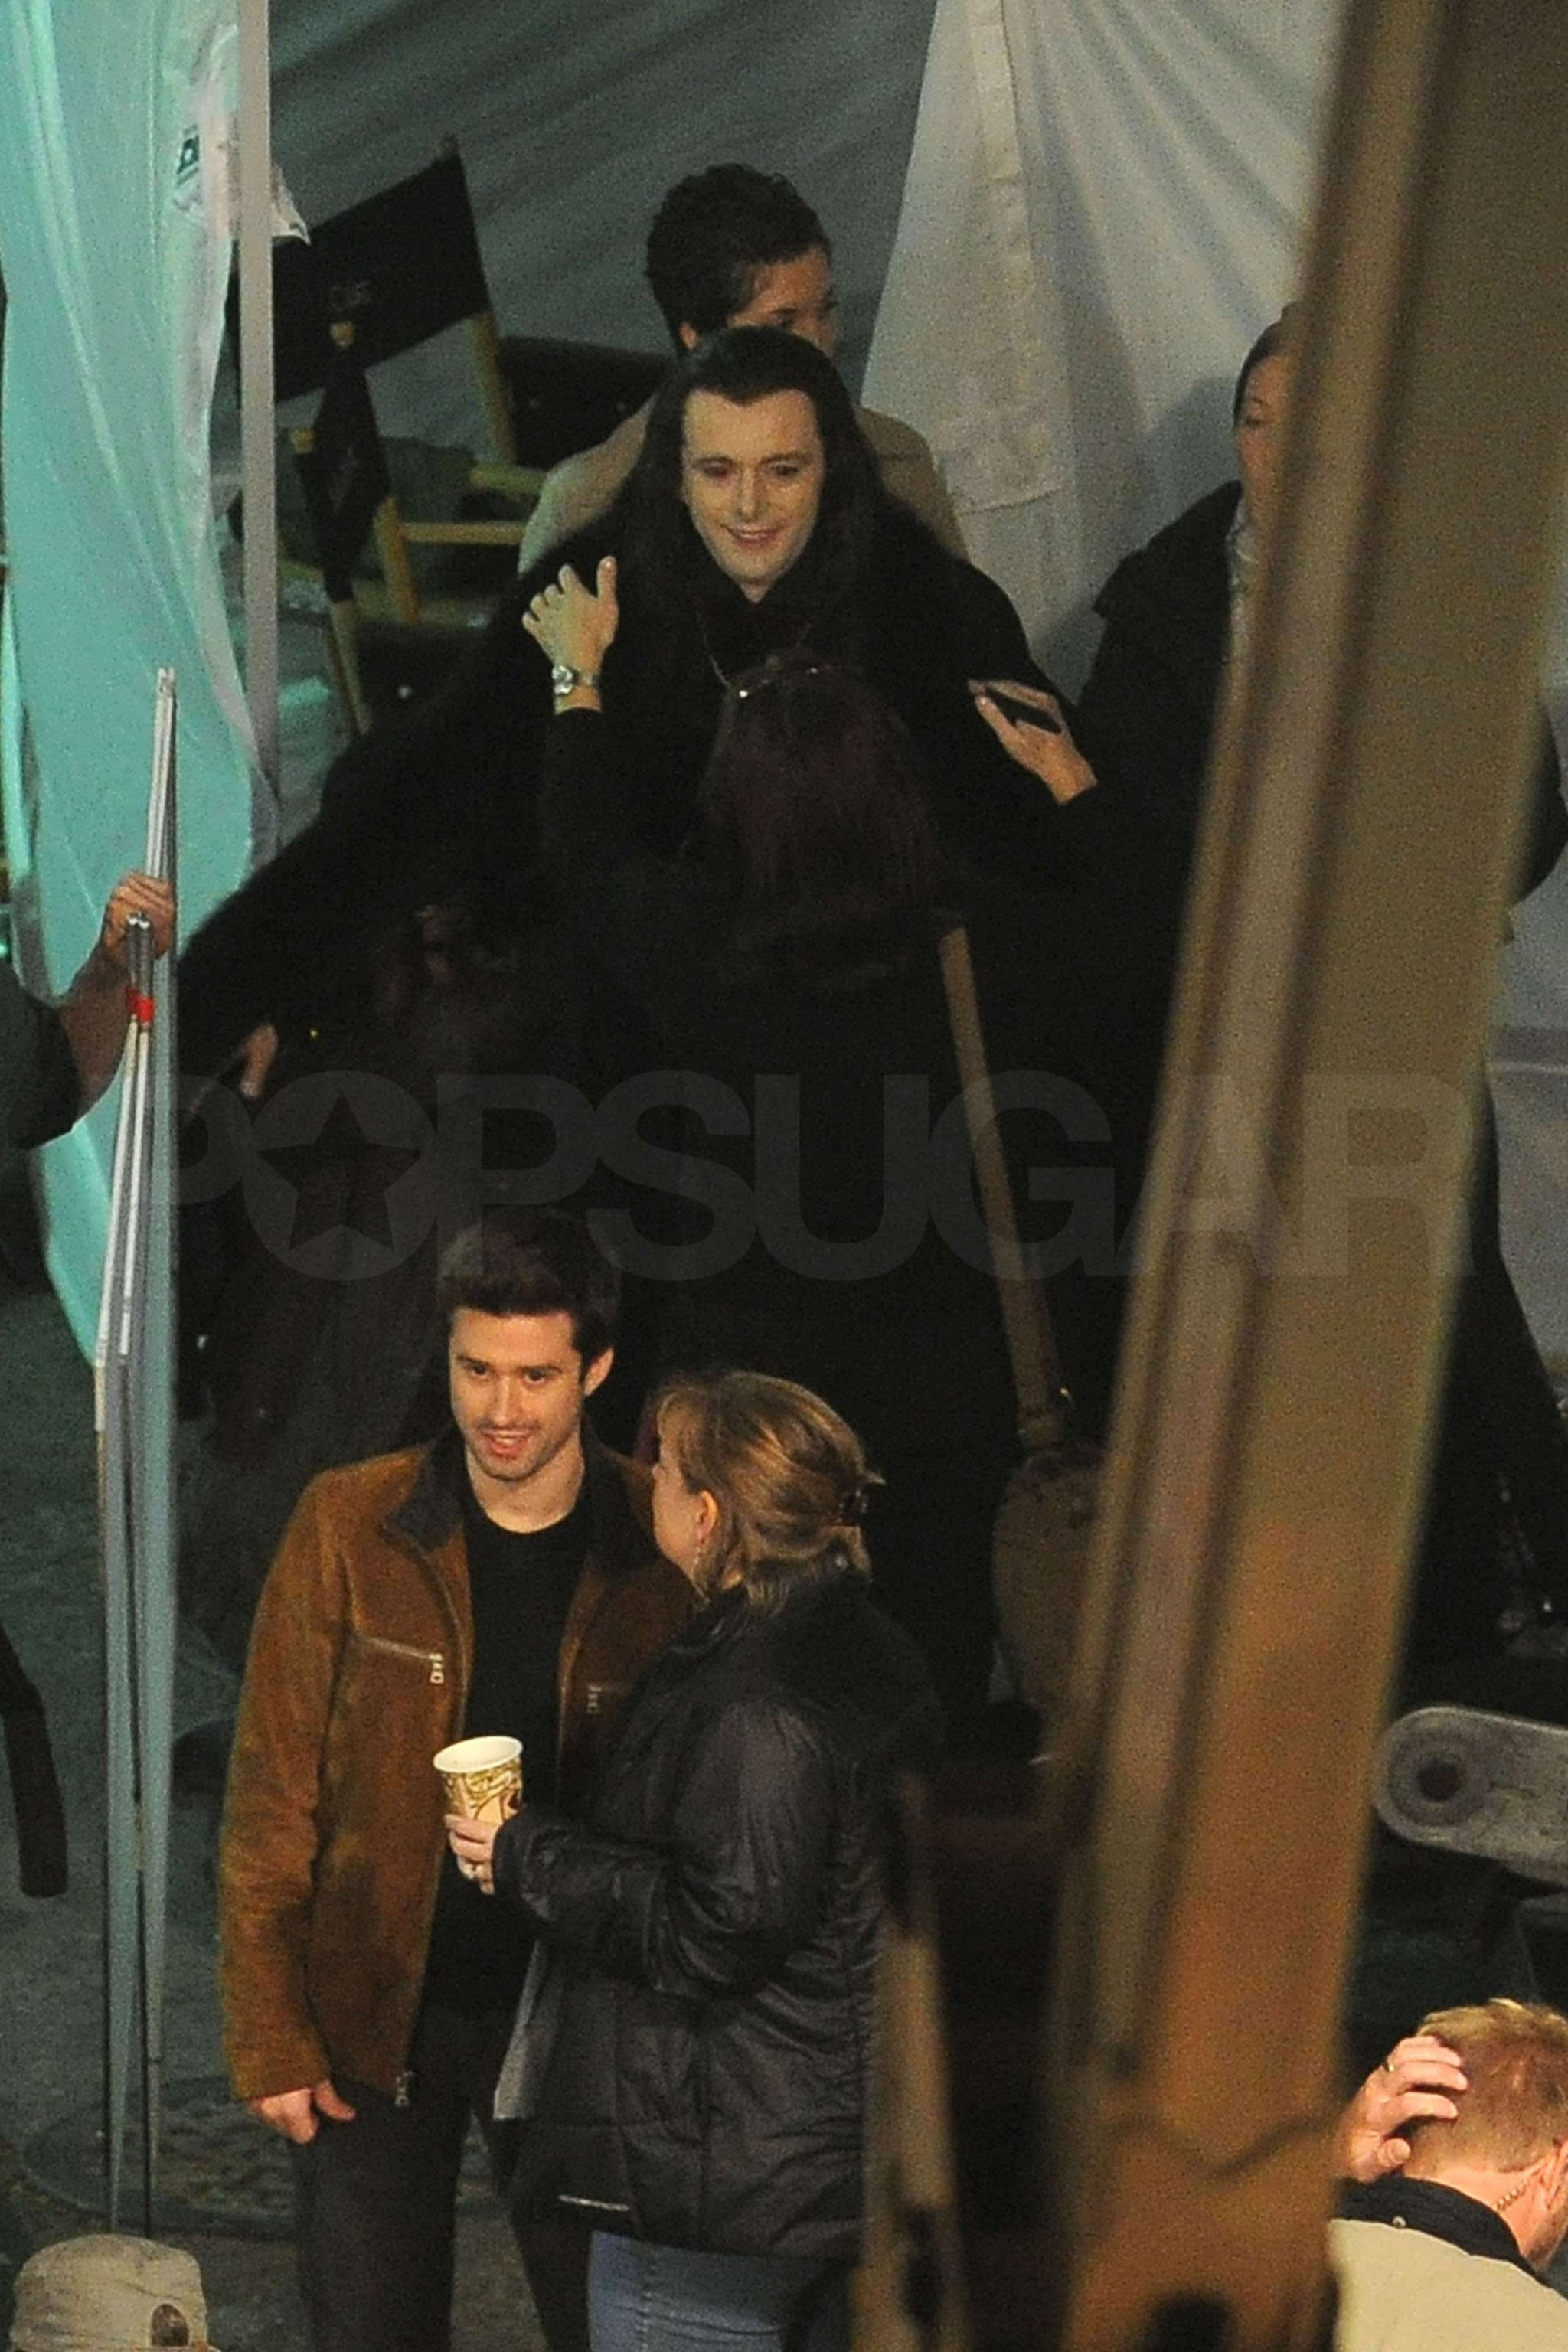 See Dakota Fanning and Michael Sheen Shooting Breaking Dawn!